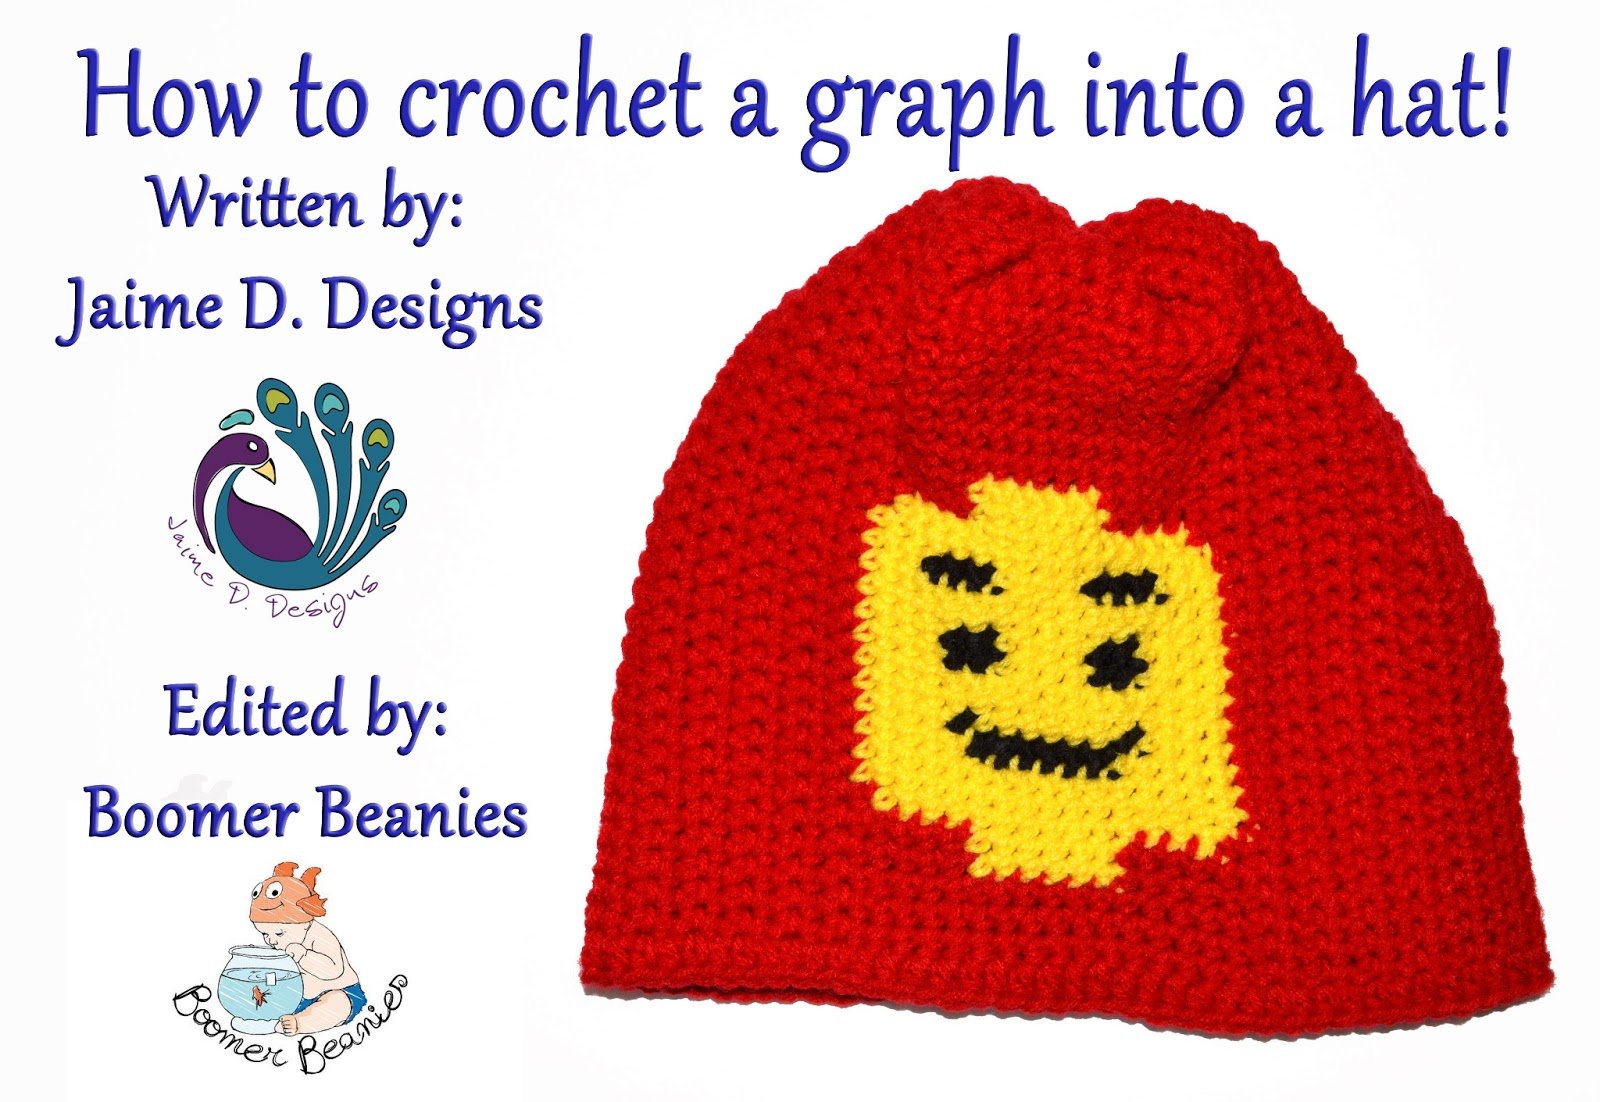 Crocheting From A Graph : Jaime D. Designs: How to crochet a graph into a hat!